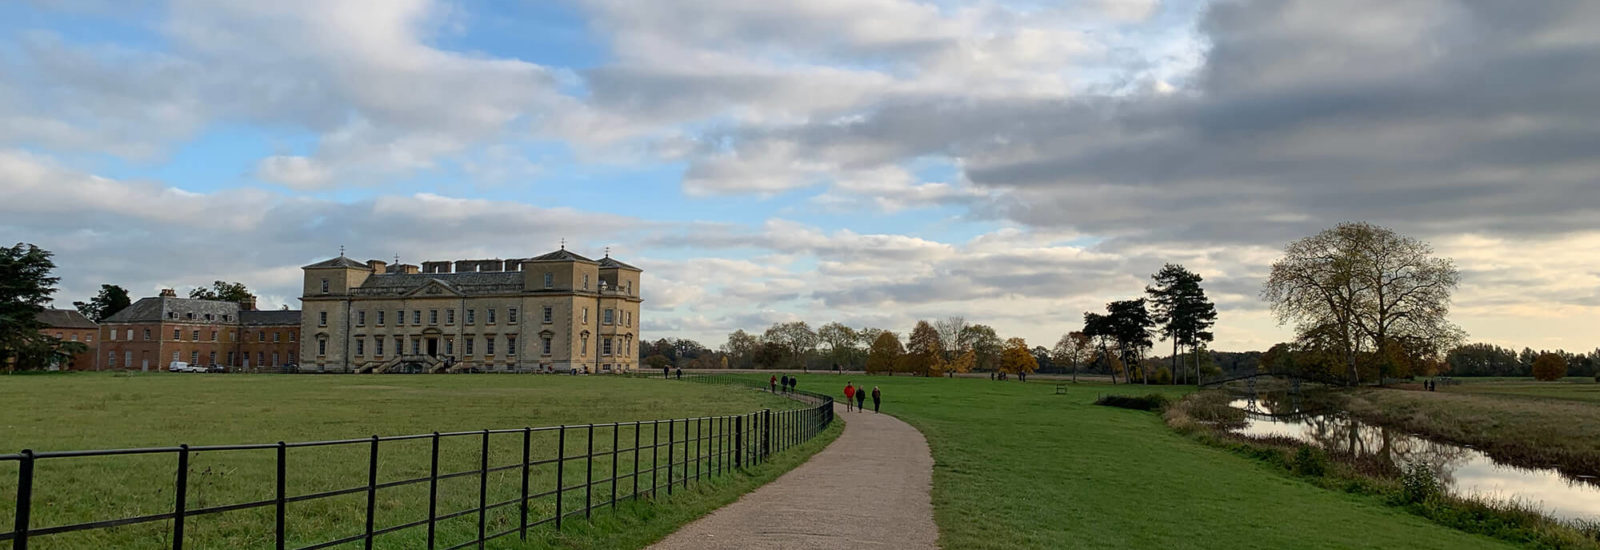 Image of National Trust Croome